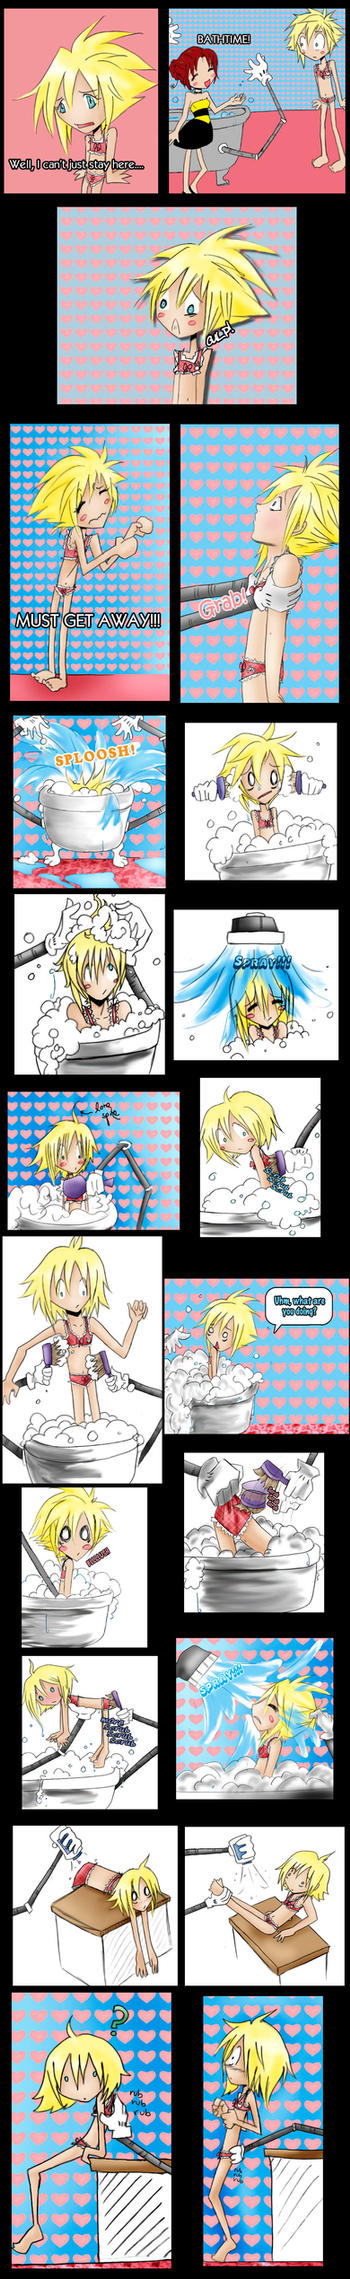 Cloud Comic Commish Page 2 by PianoxLullaby